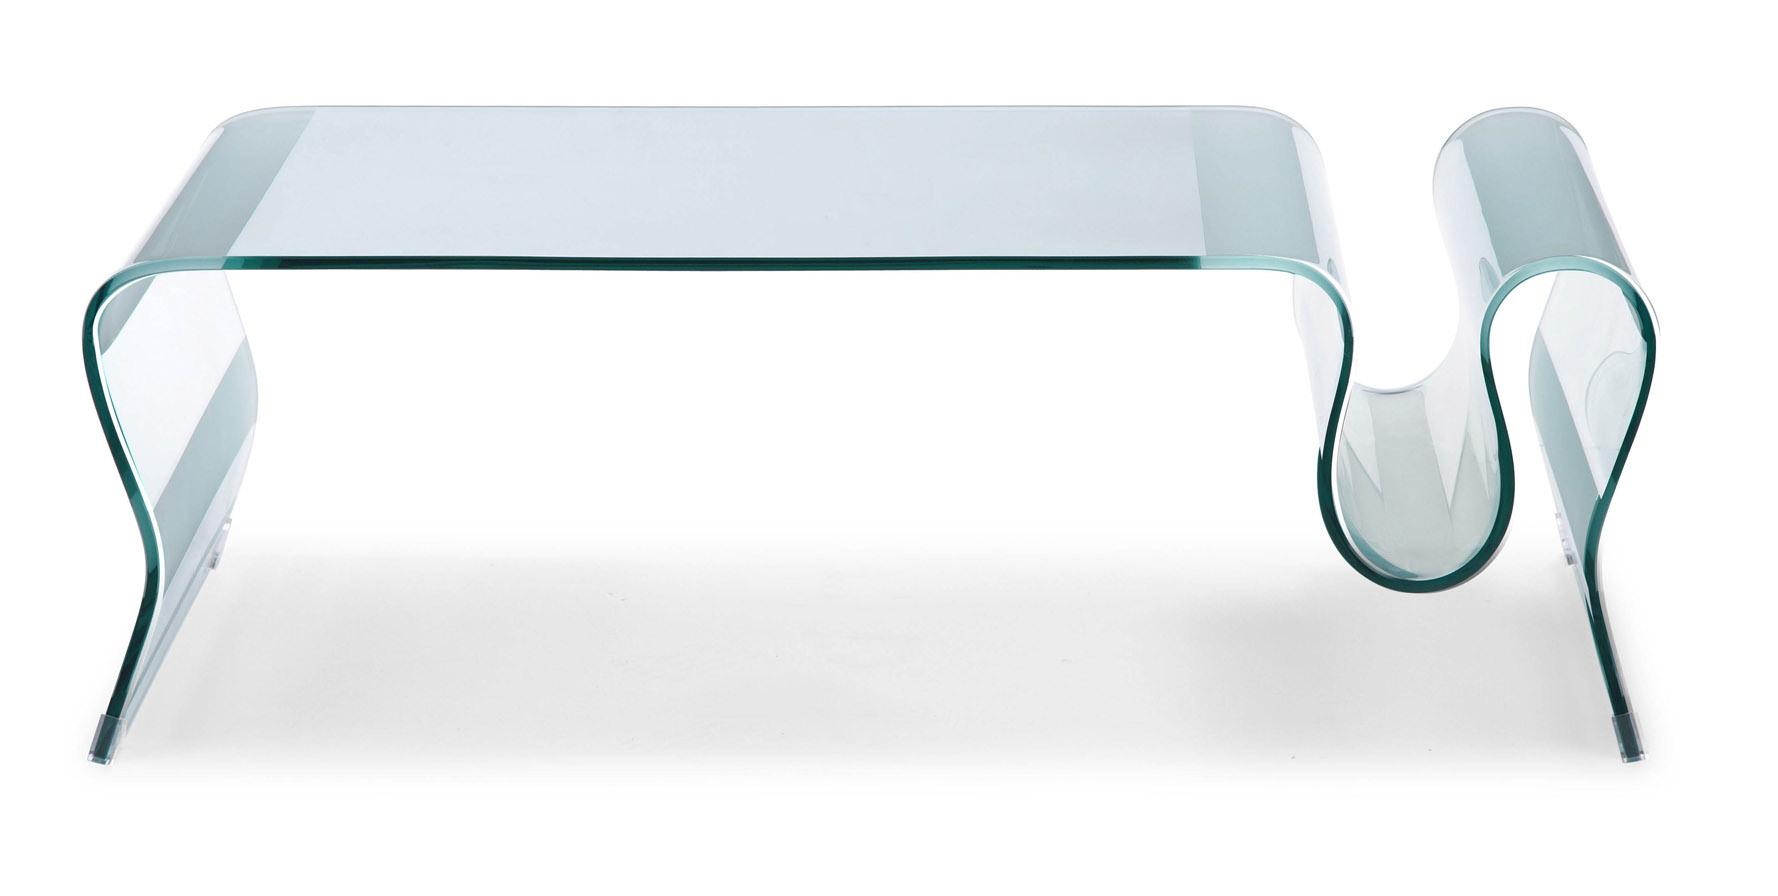 Chuck tempered glass coffee table clear glass zuri for Tempered glass coffee table